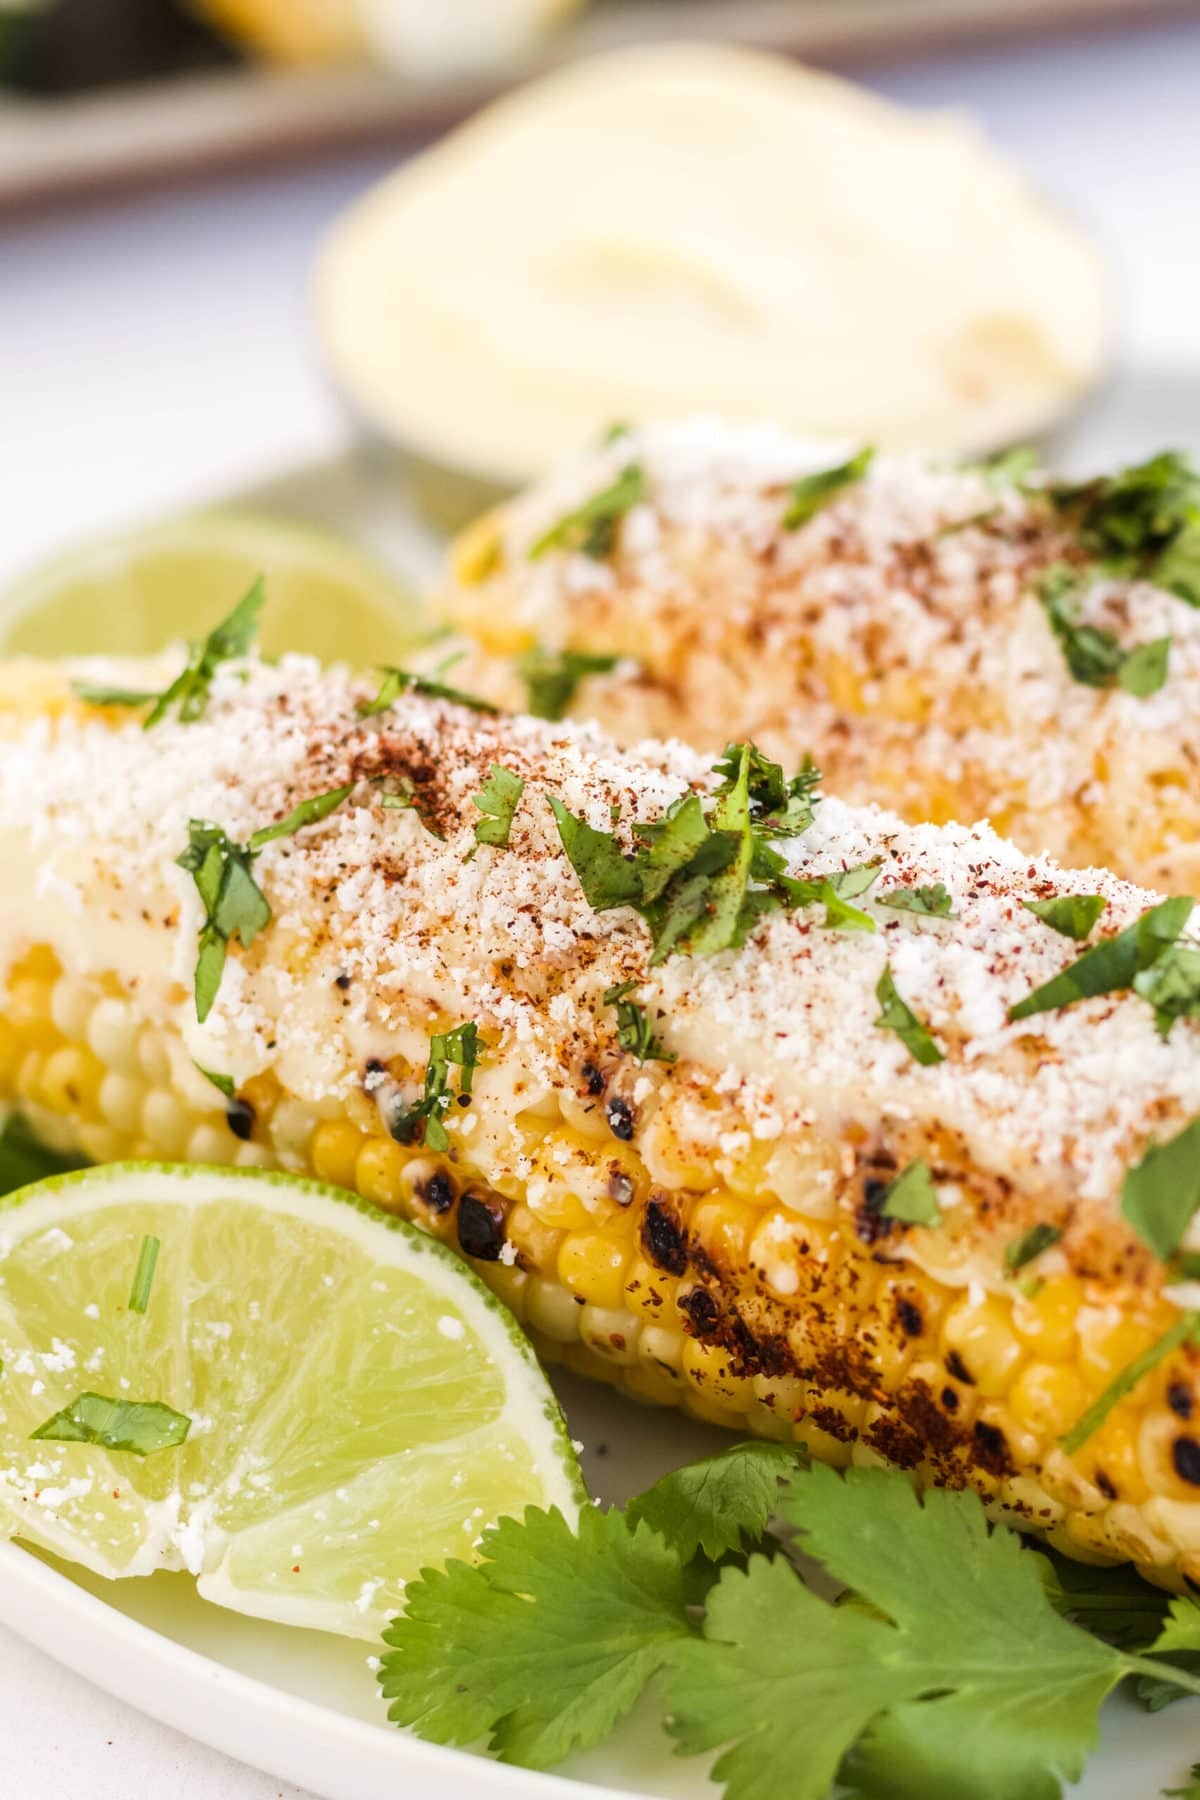 corn on the cob with cheese, cilantro and lime on a plate